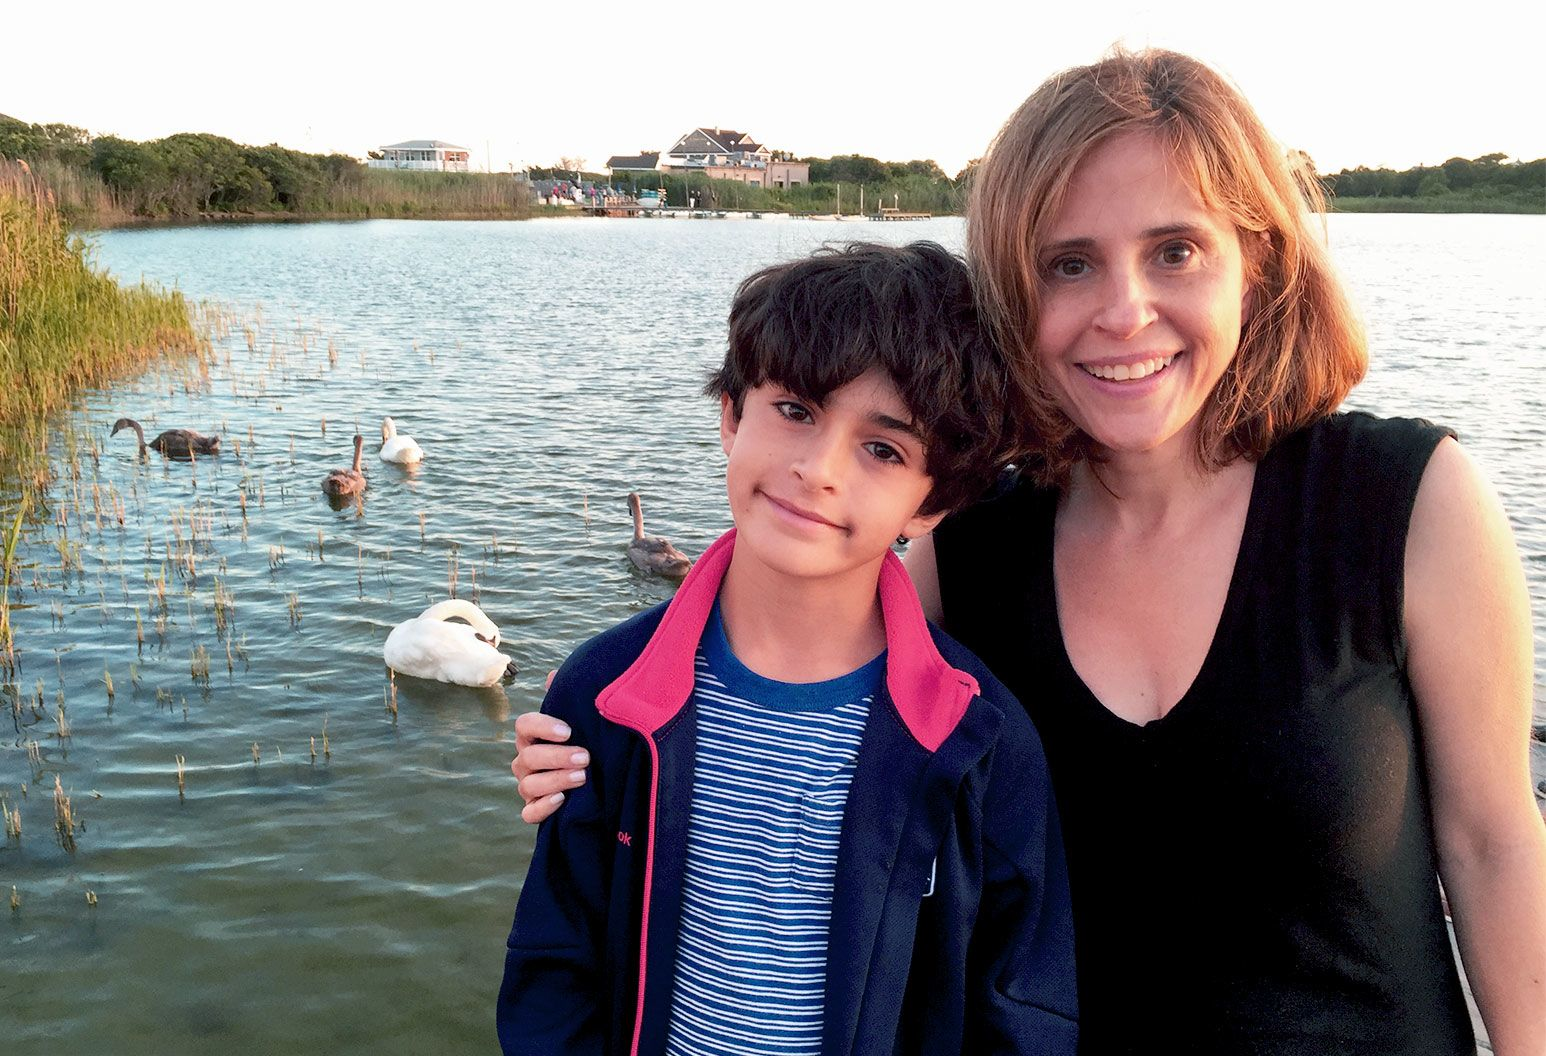 a young boy with curly black hair, a striped shirt displays a faint smile as he stands in front of a lake with an older woman with her hand on his shoulder. She has shoulder length auburn hair, and wears a black top. In the lake are geese treading in the water as the sun begins to set.